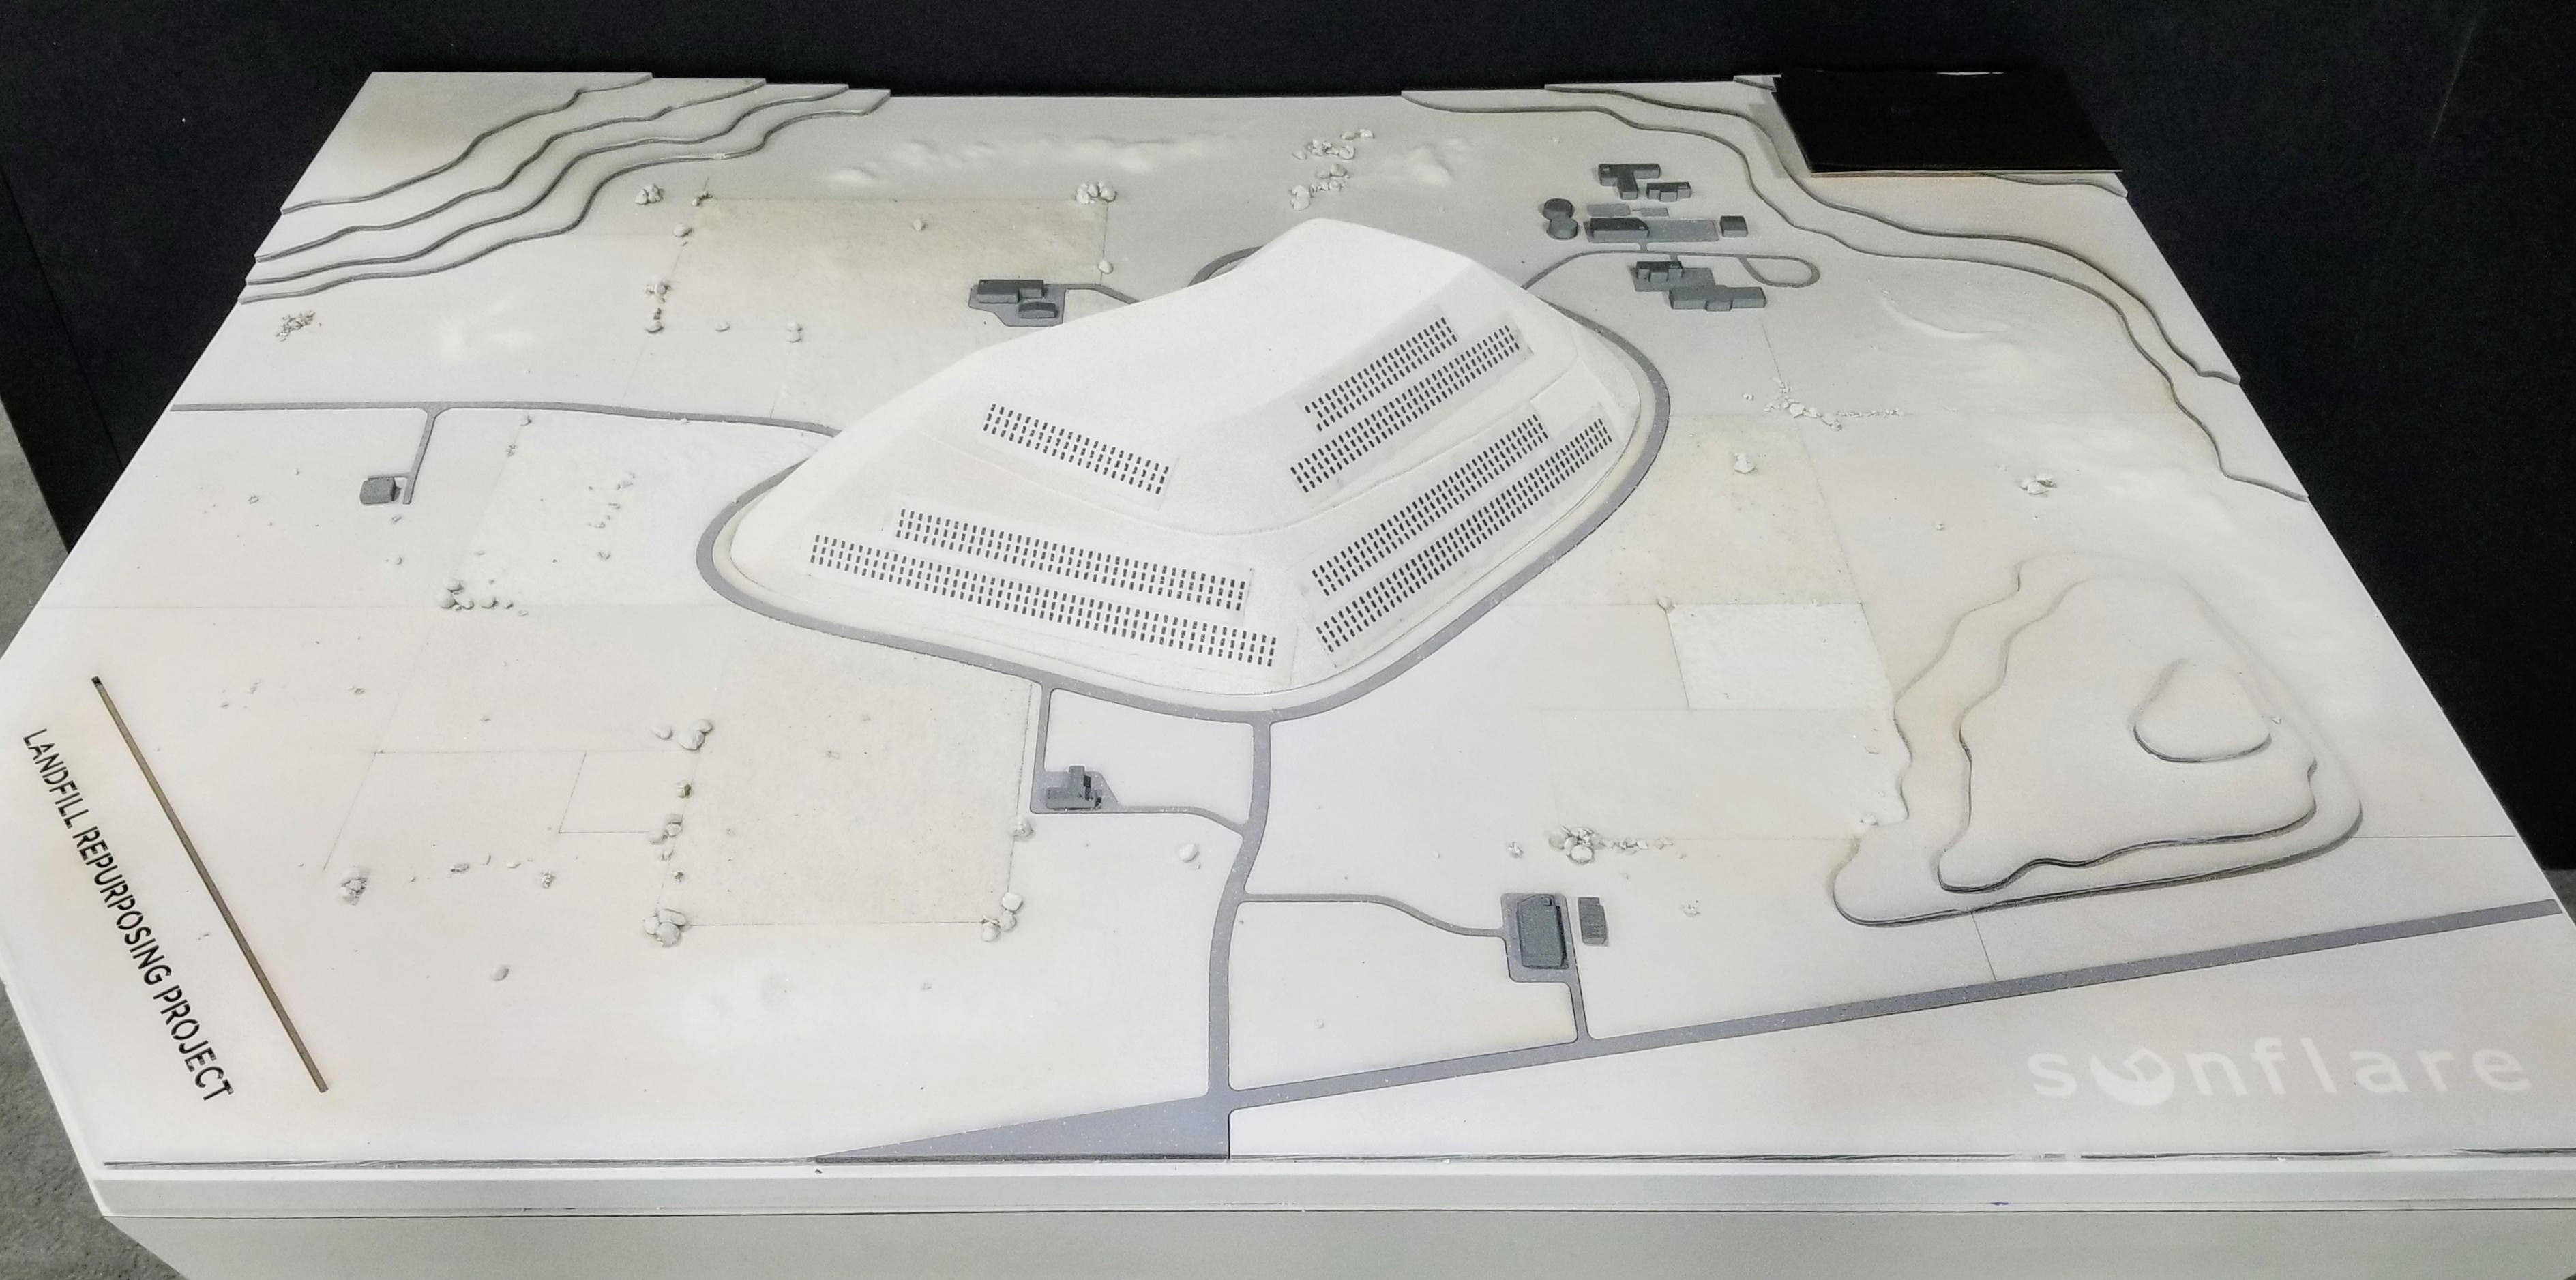 A model of the new 40 MW SunFlare solar project at a landfill in Israel